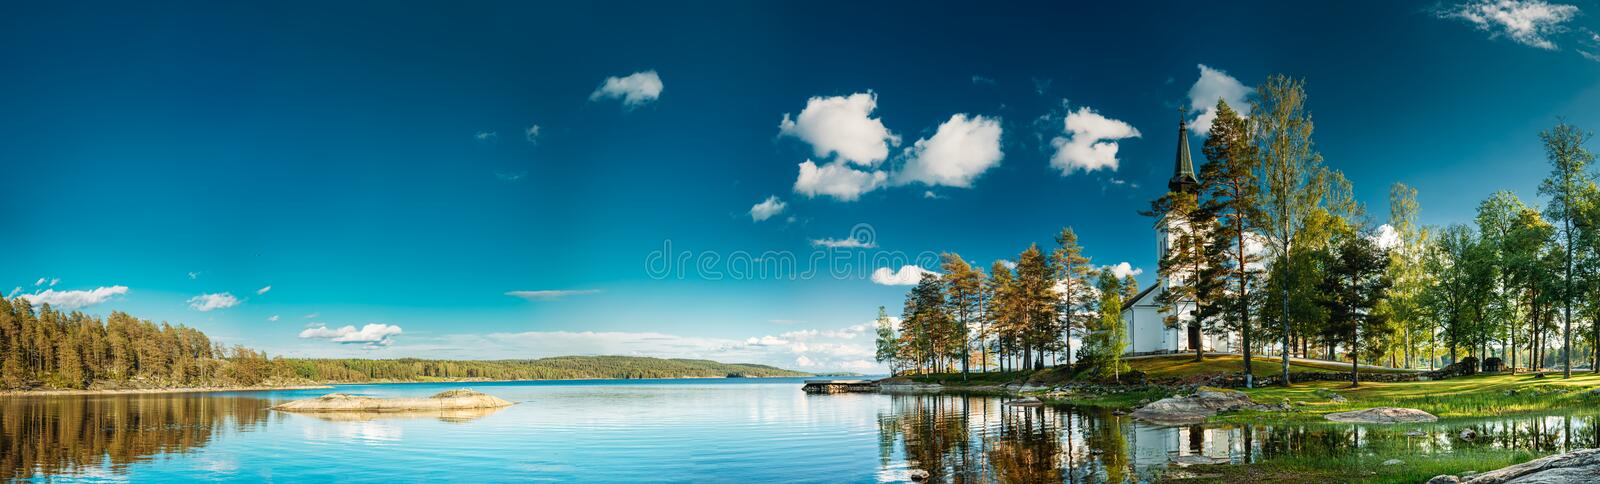 Tocksfors, Sweden. Stommen Church In Sunny Summer Day. Local Landmark.  stock photos